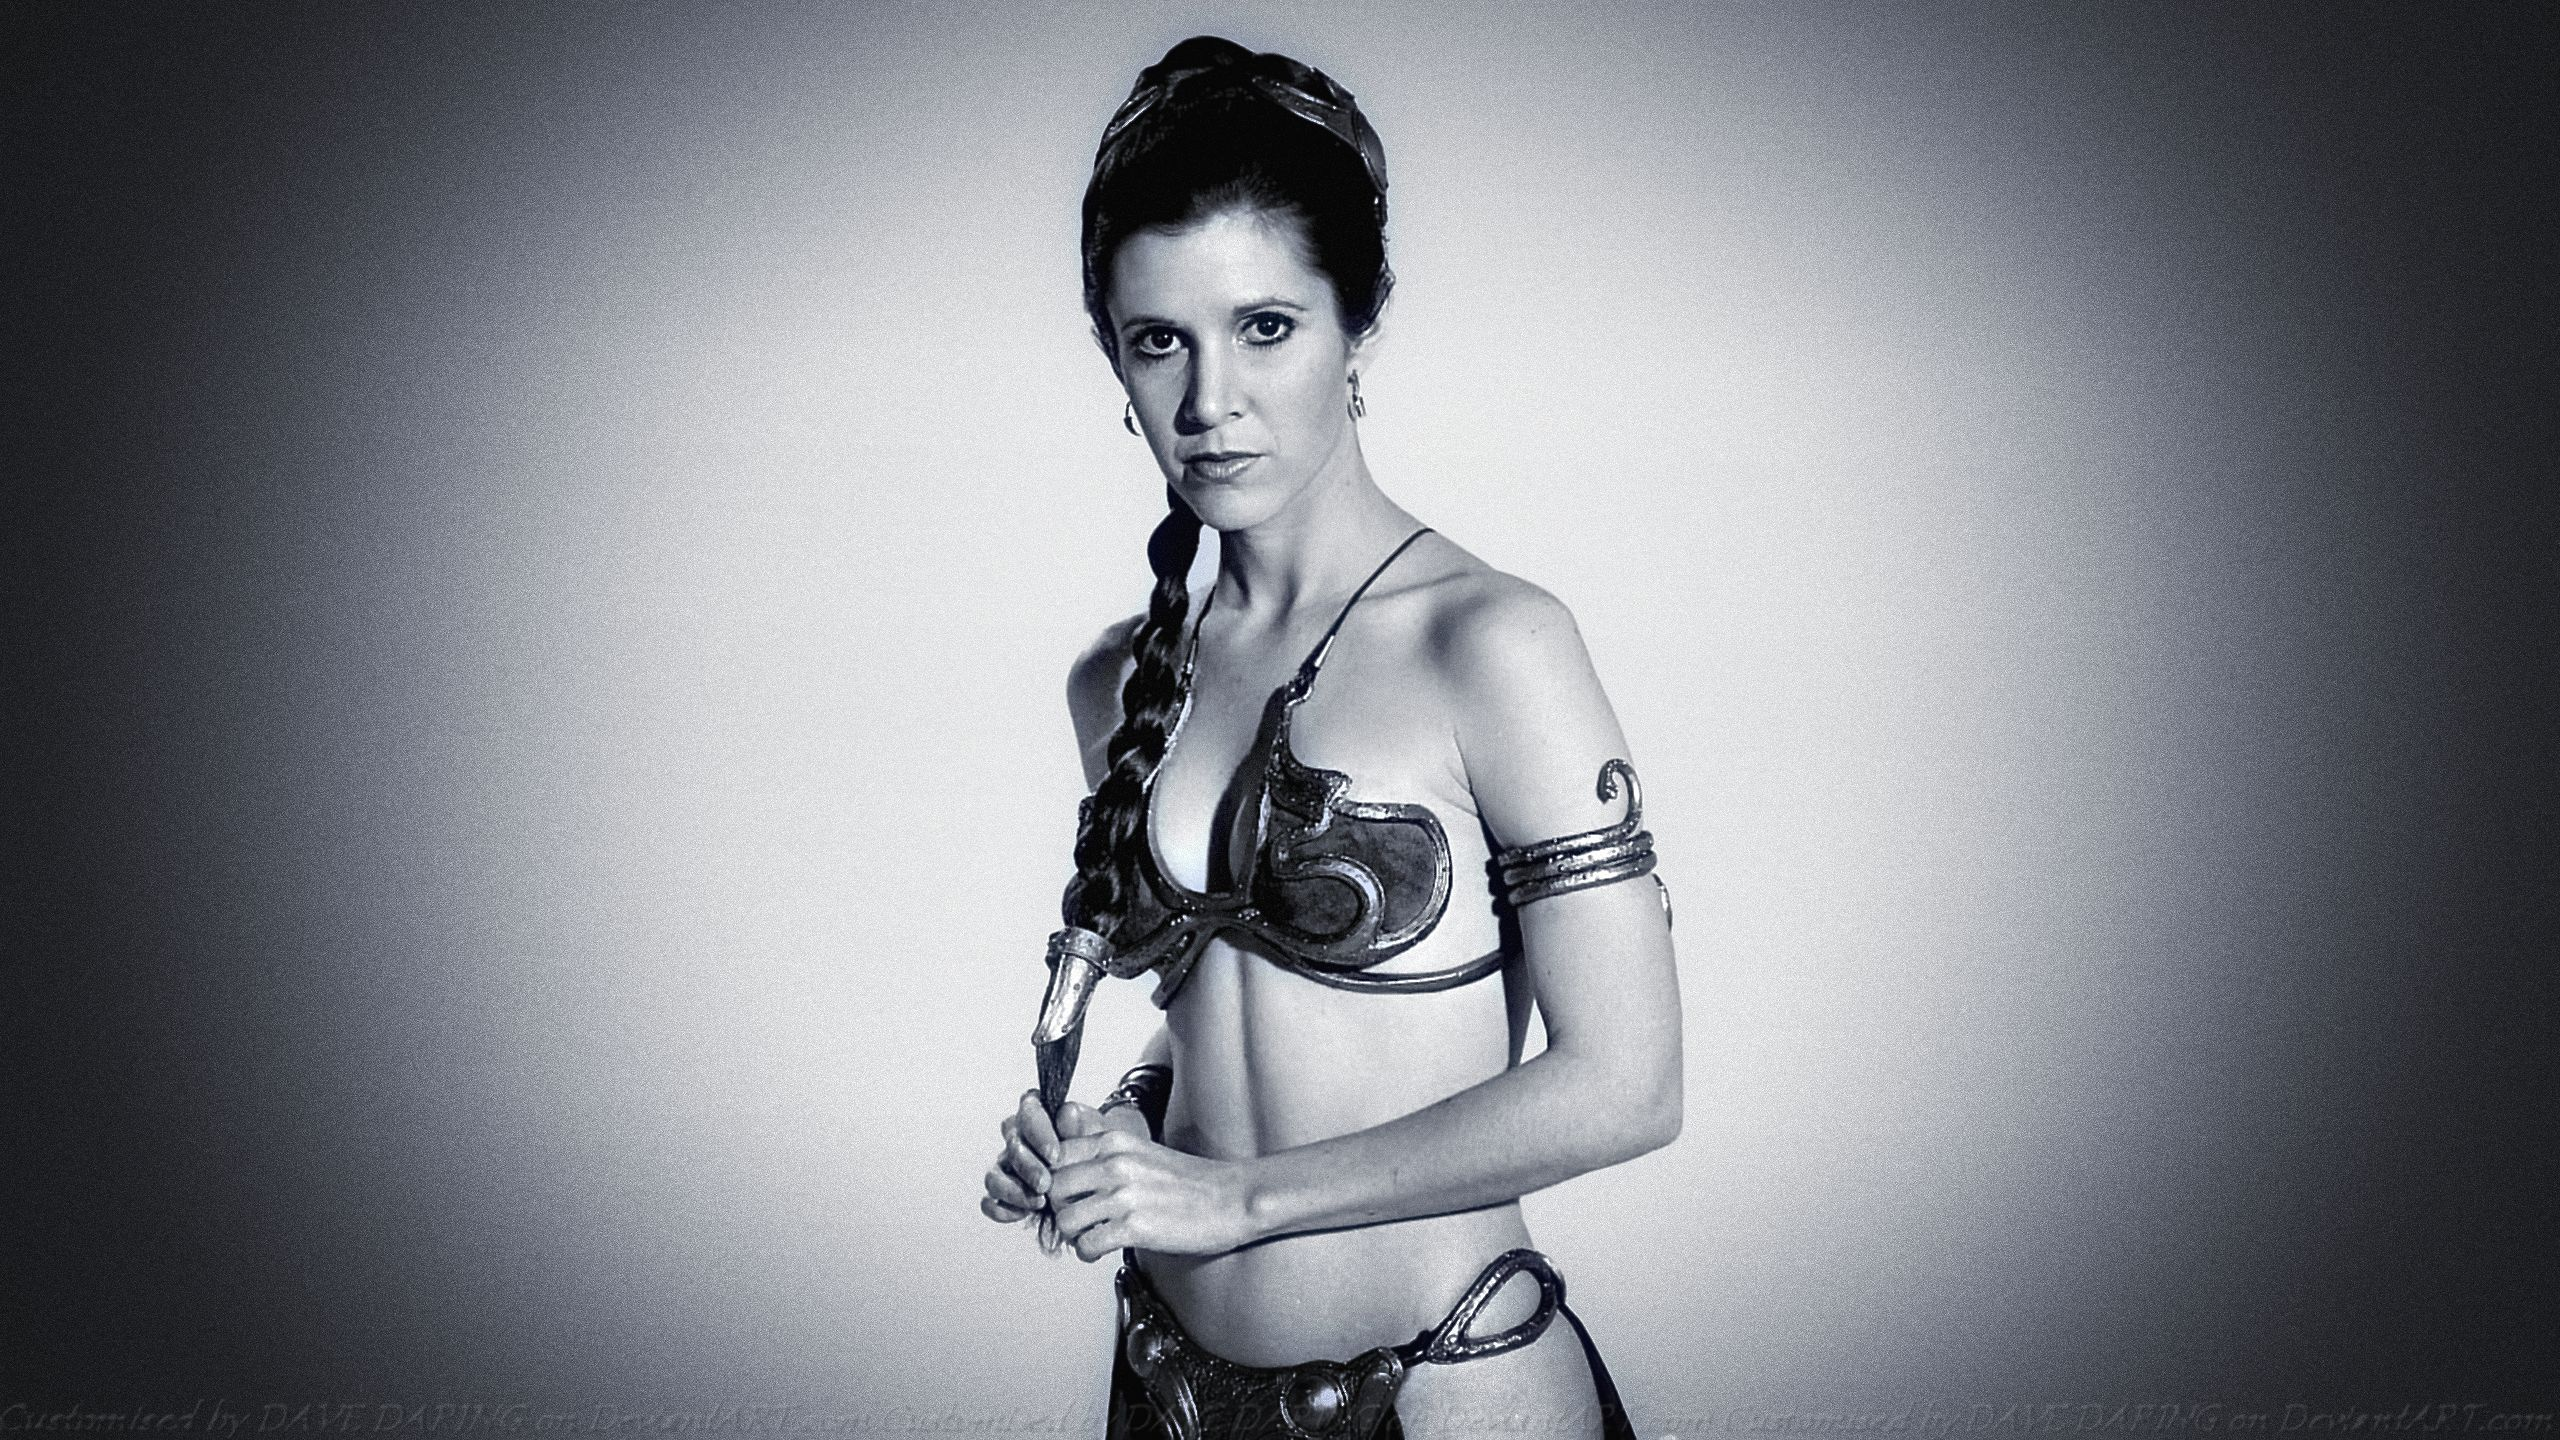 2560x1440 - Carrie Fisher Wallpapers 7